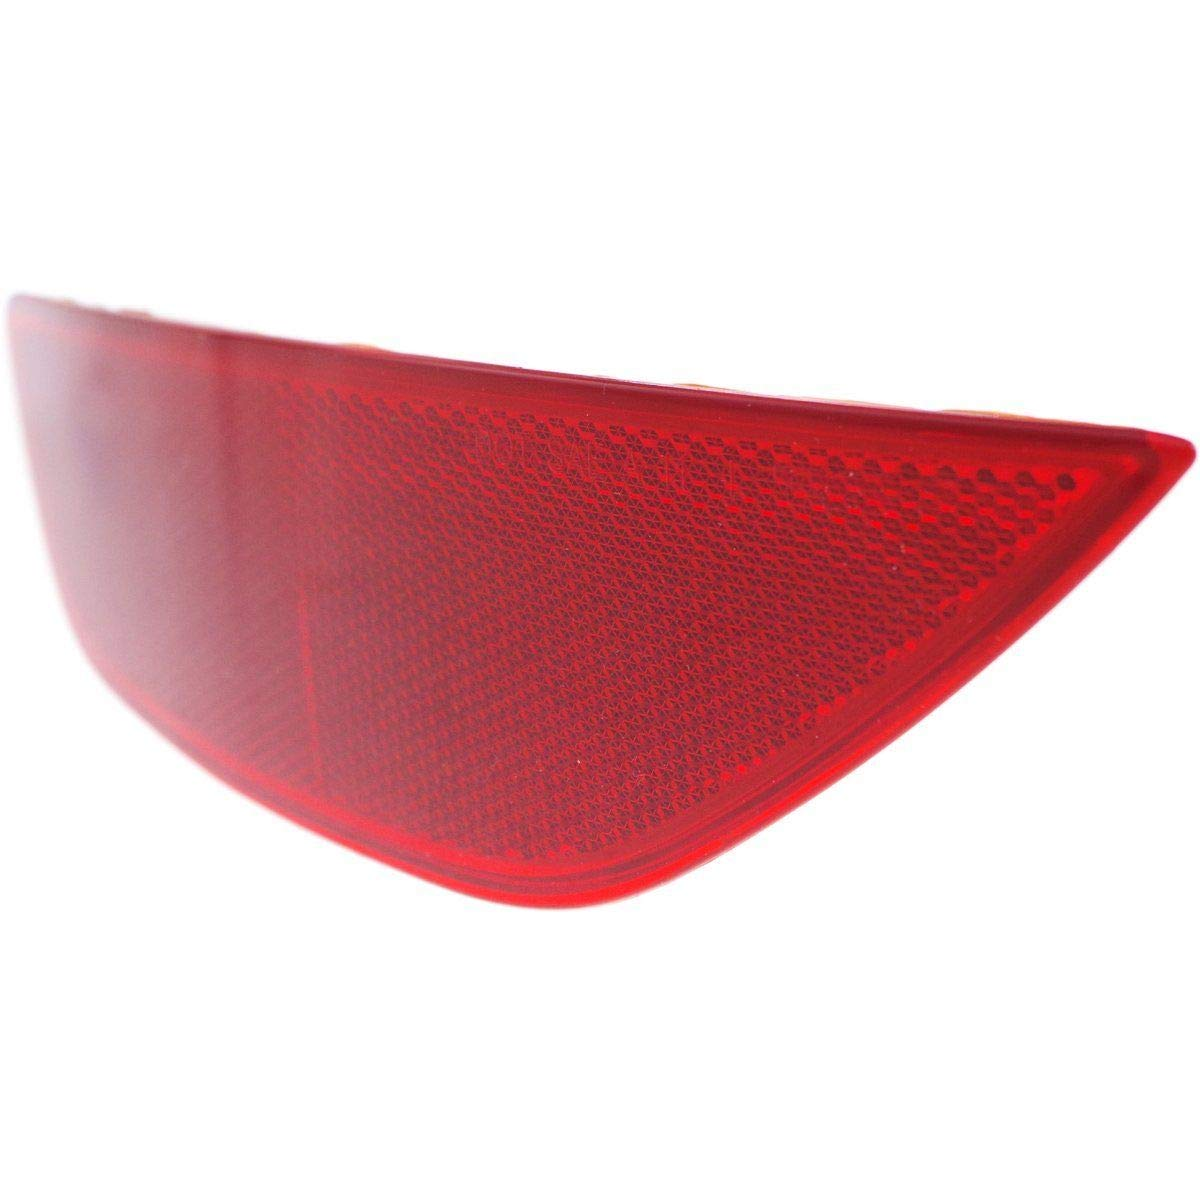 New Rear Left Driver Side Bumper Reflector For 2011-2017 Ford Fiesta (14-17 W/Or Without Body Kit), (Exc. St Model), Hatchback FO1184107